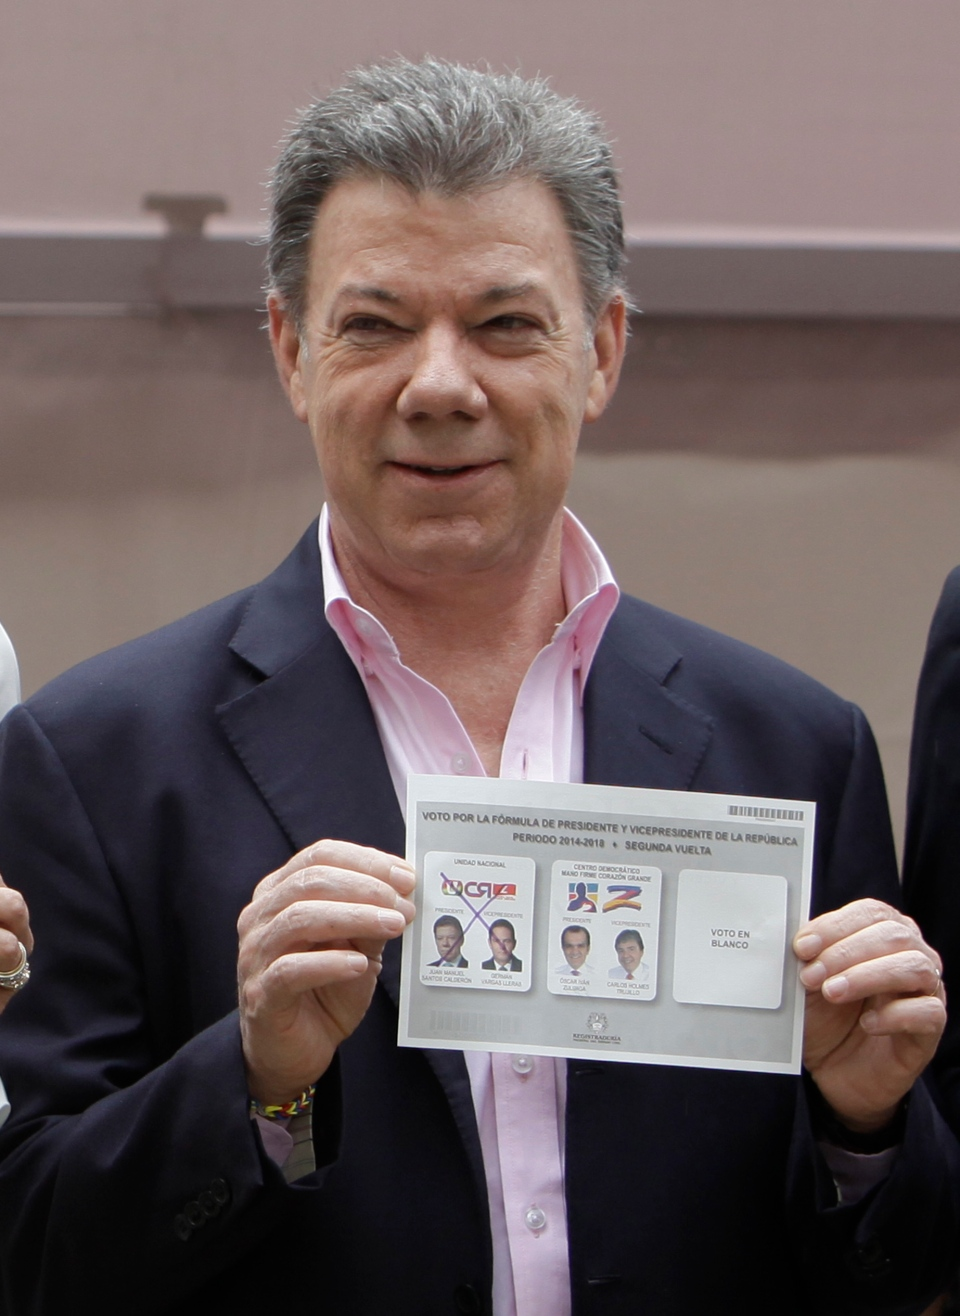 President Juan Manuel Santos shows his ballot before voting during presidential elections in Bogota, Colombia, Sunday, June 15, 2014. (AP / Javier Galeano)